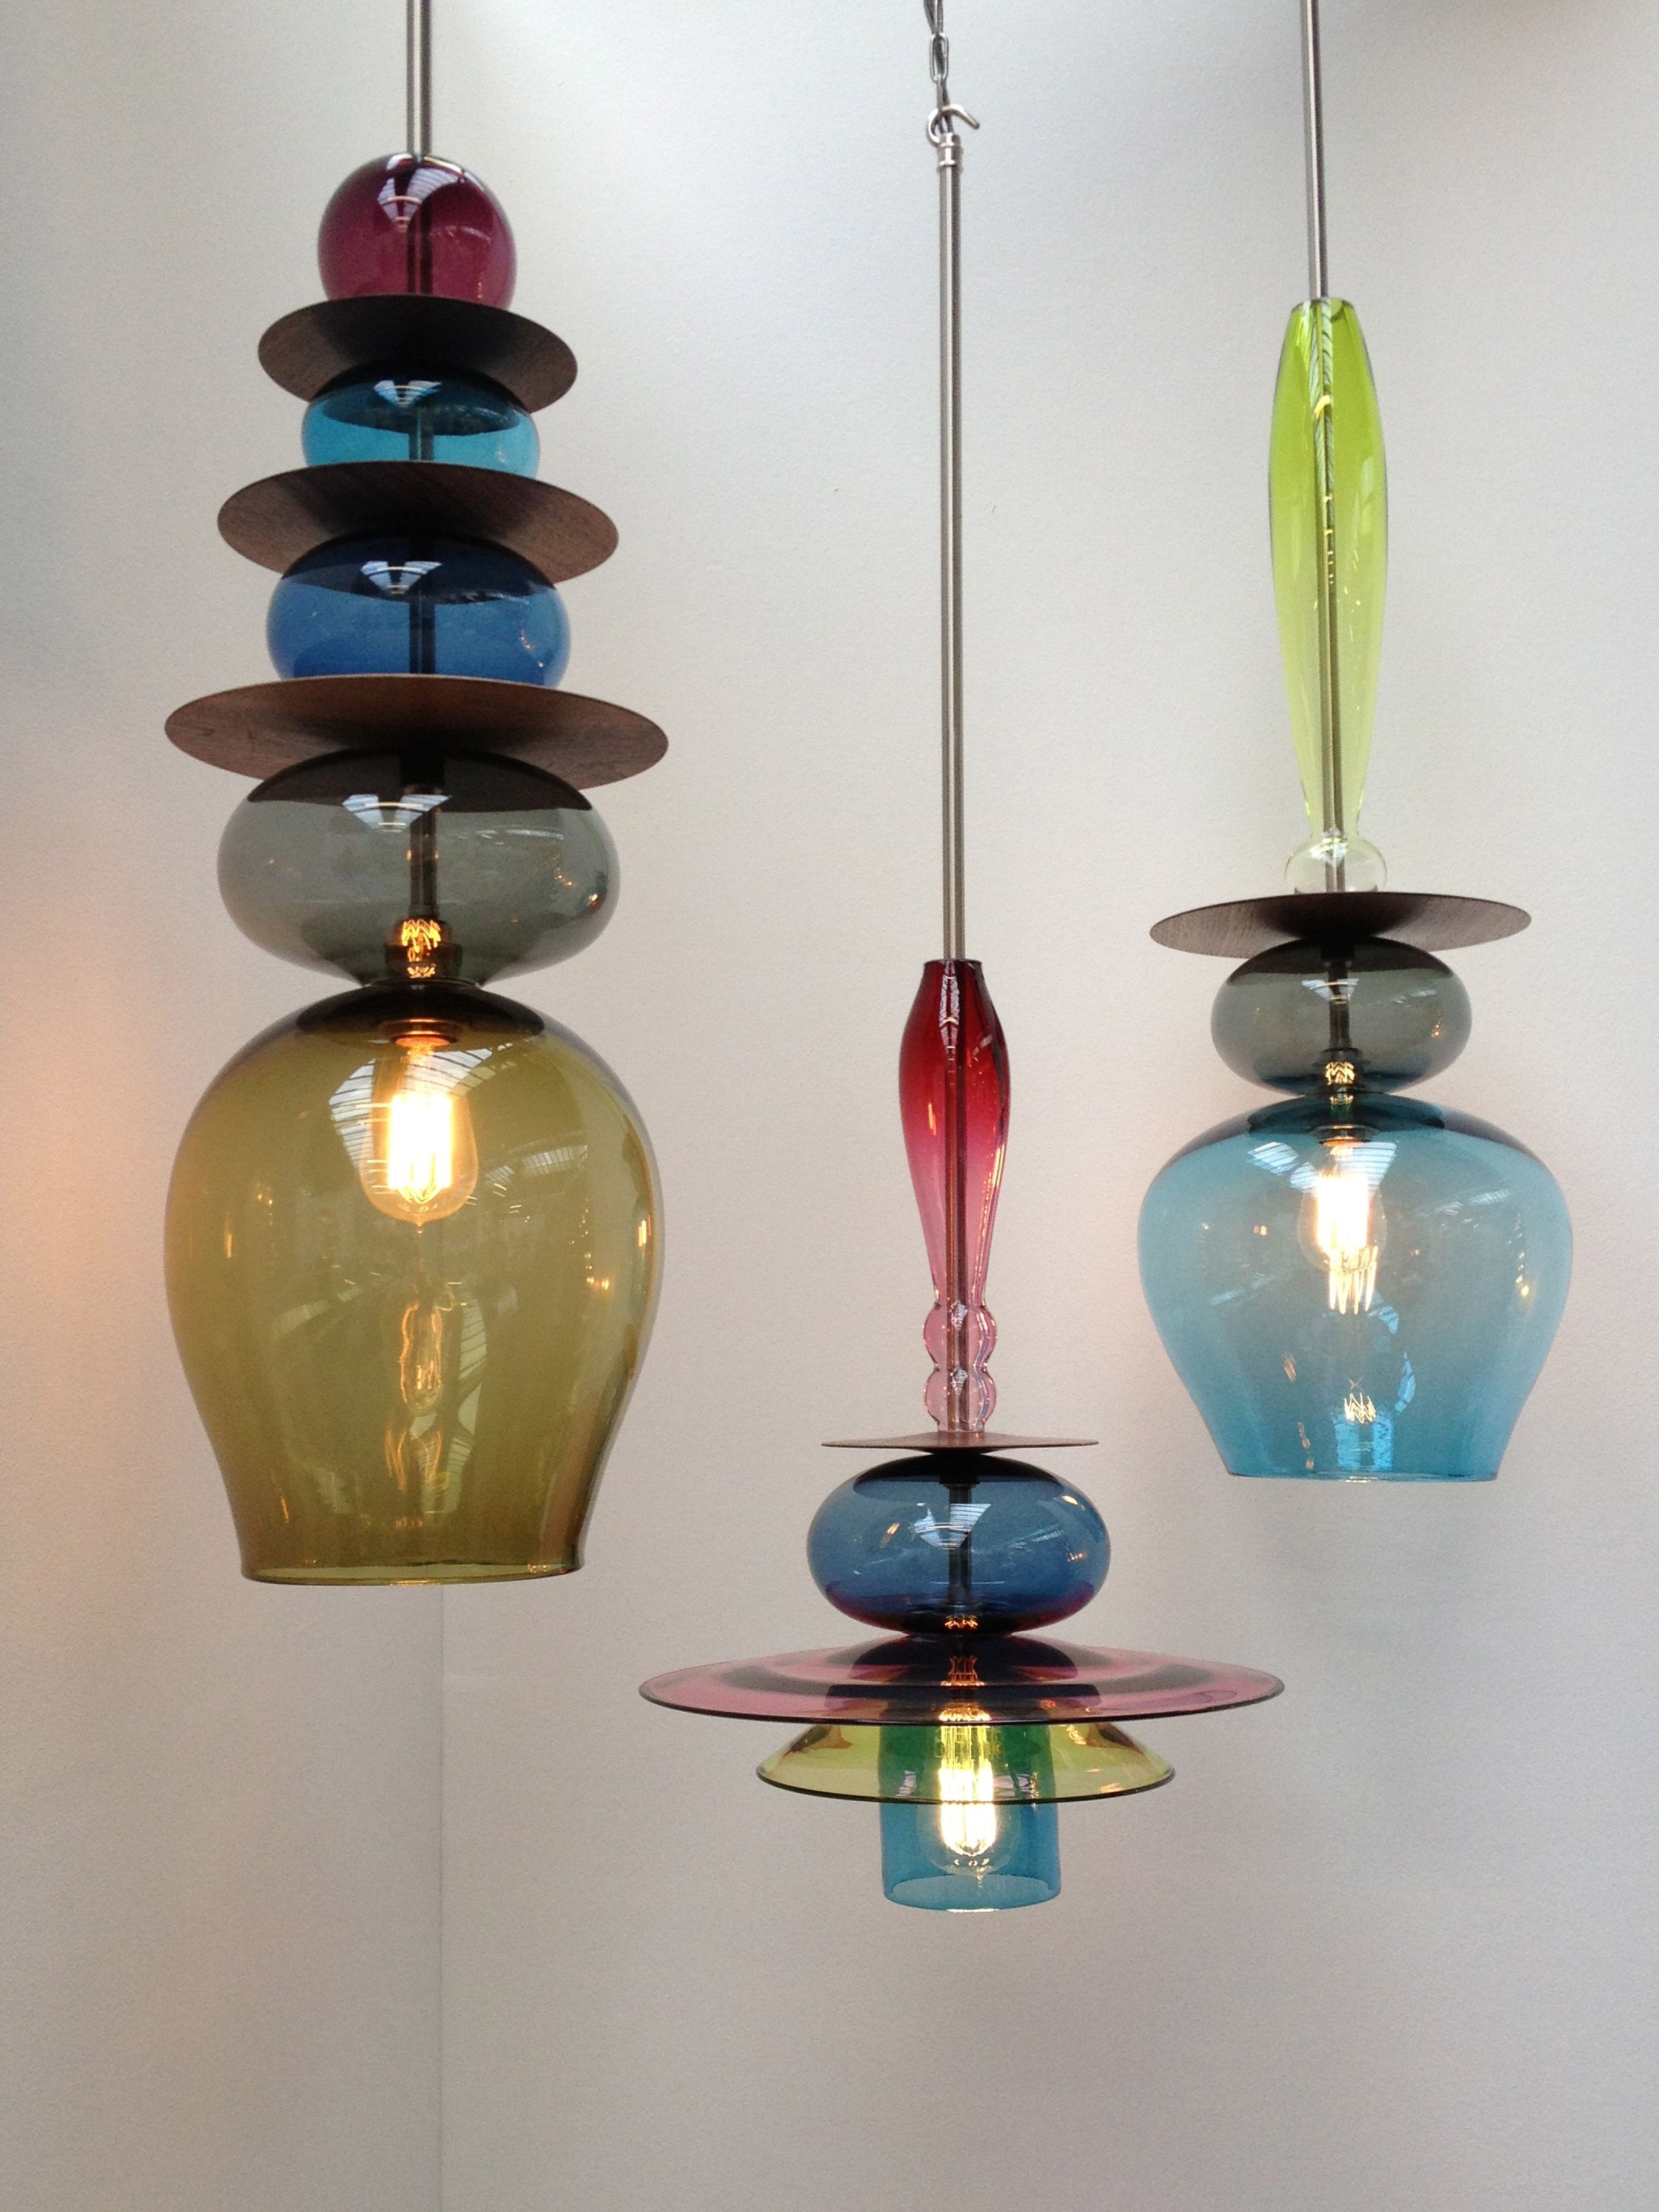 Curiosa \u0026 Curiosa | Contemporary light and chandelier | Pinterest ...